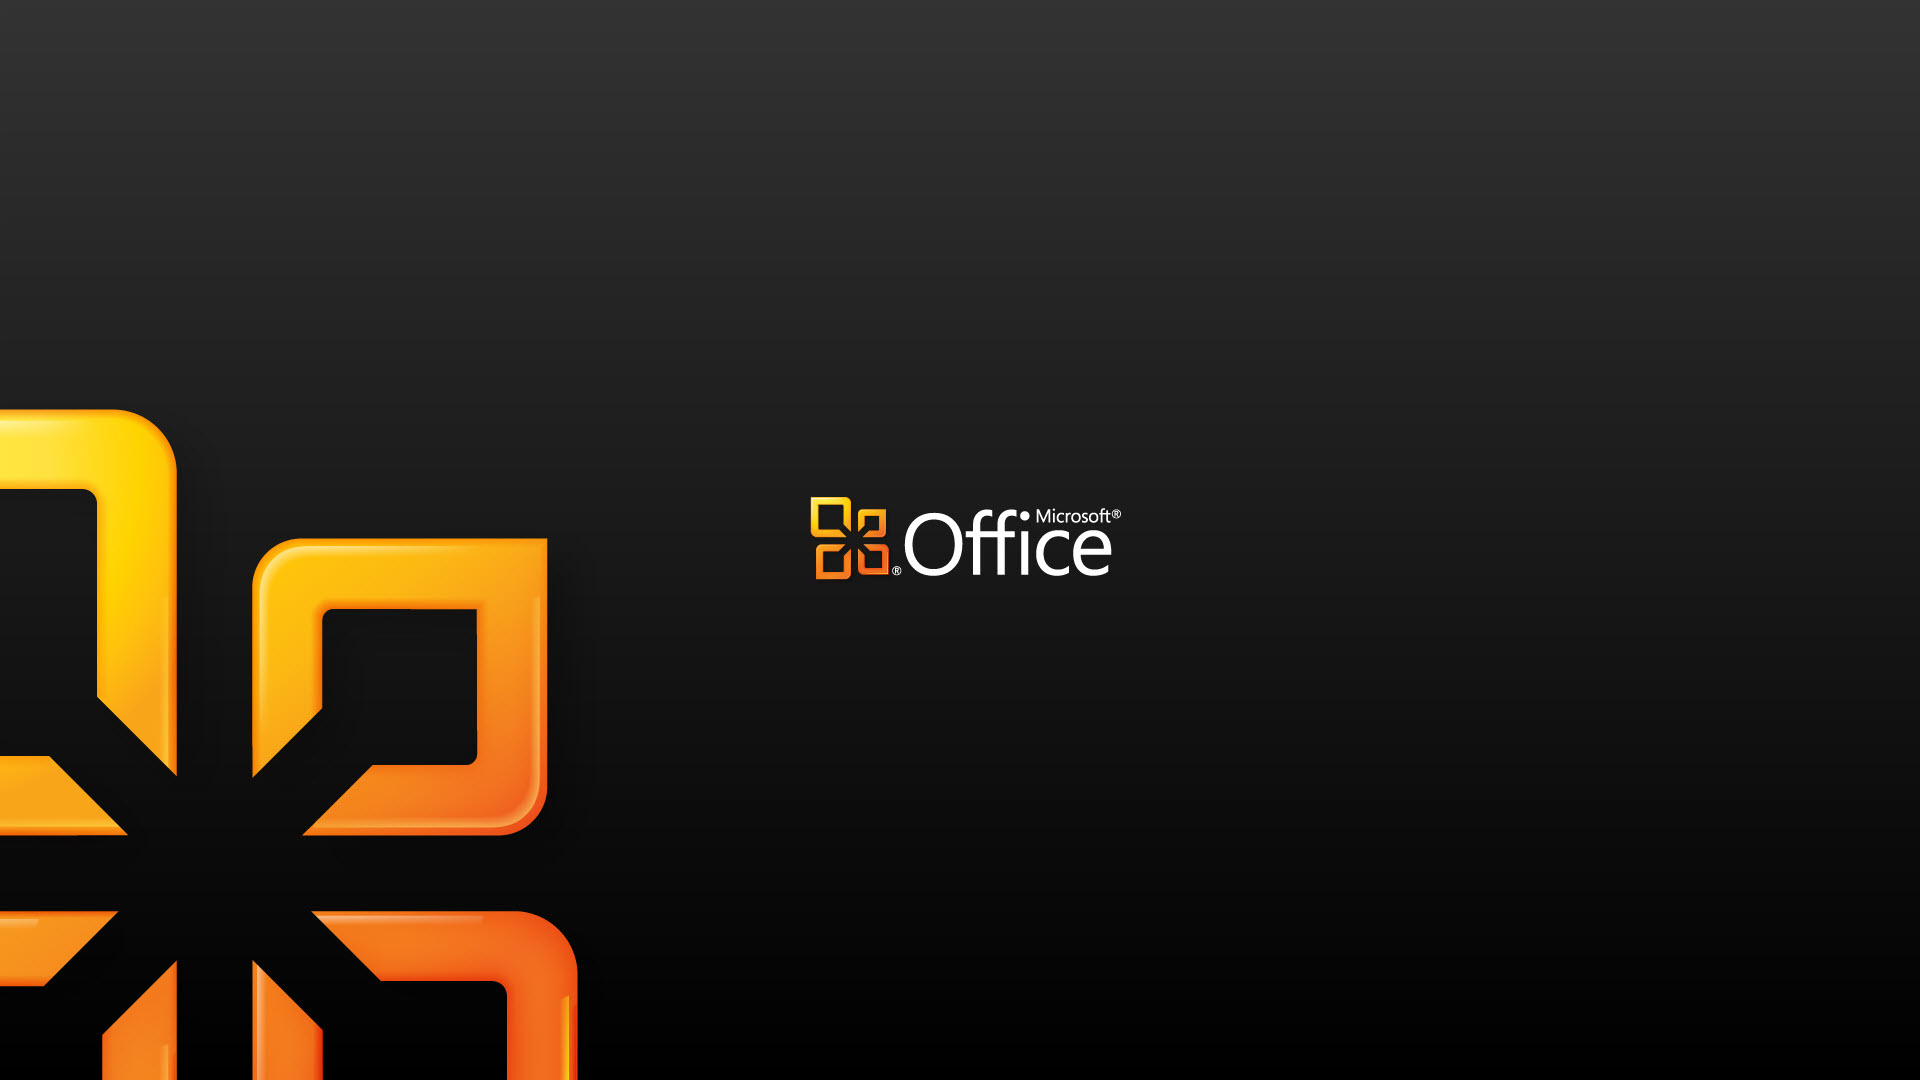 Microsoft Office Wallpaper